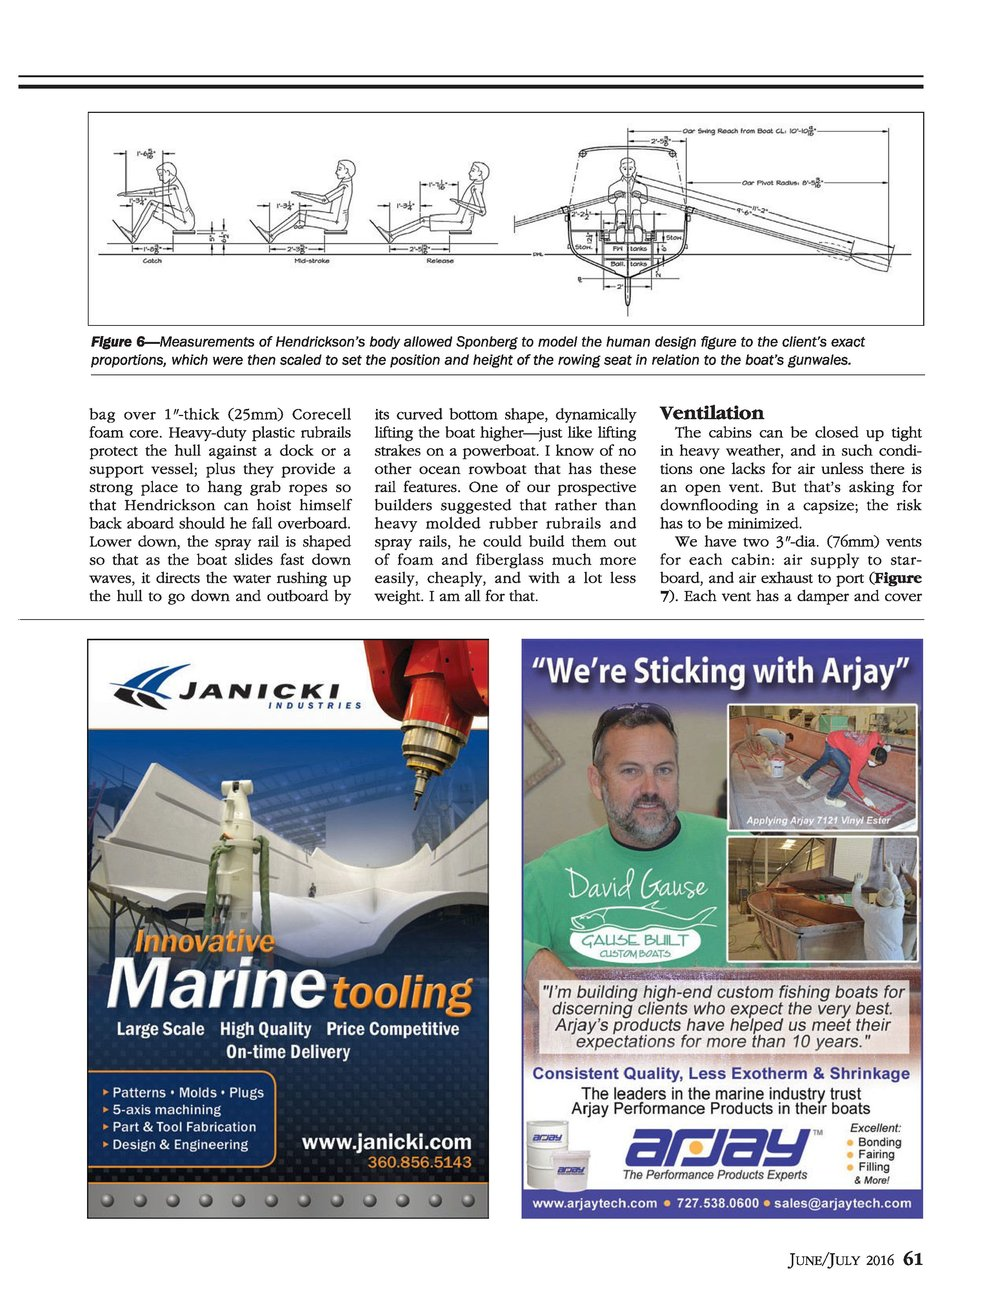 Design Brief Professional Boatbuilder_6.jpg